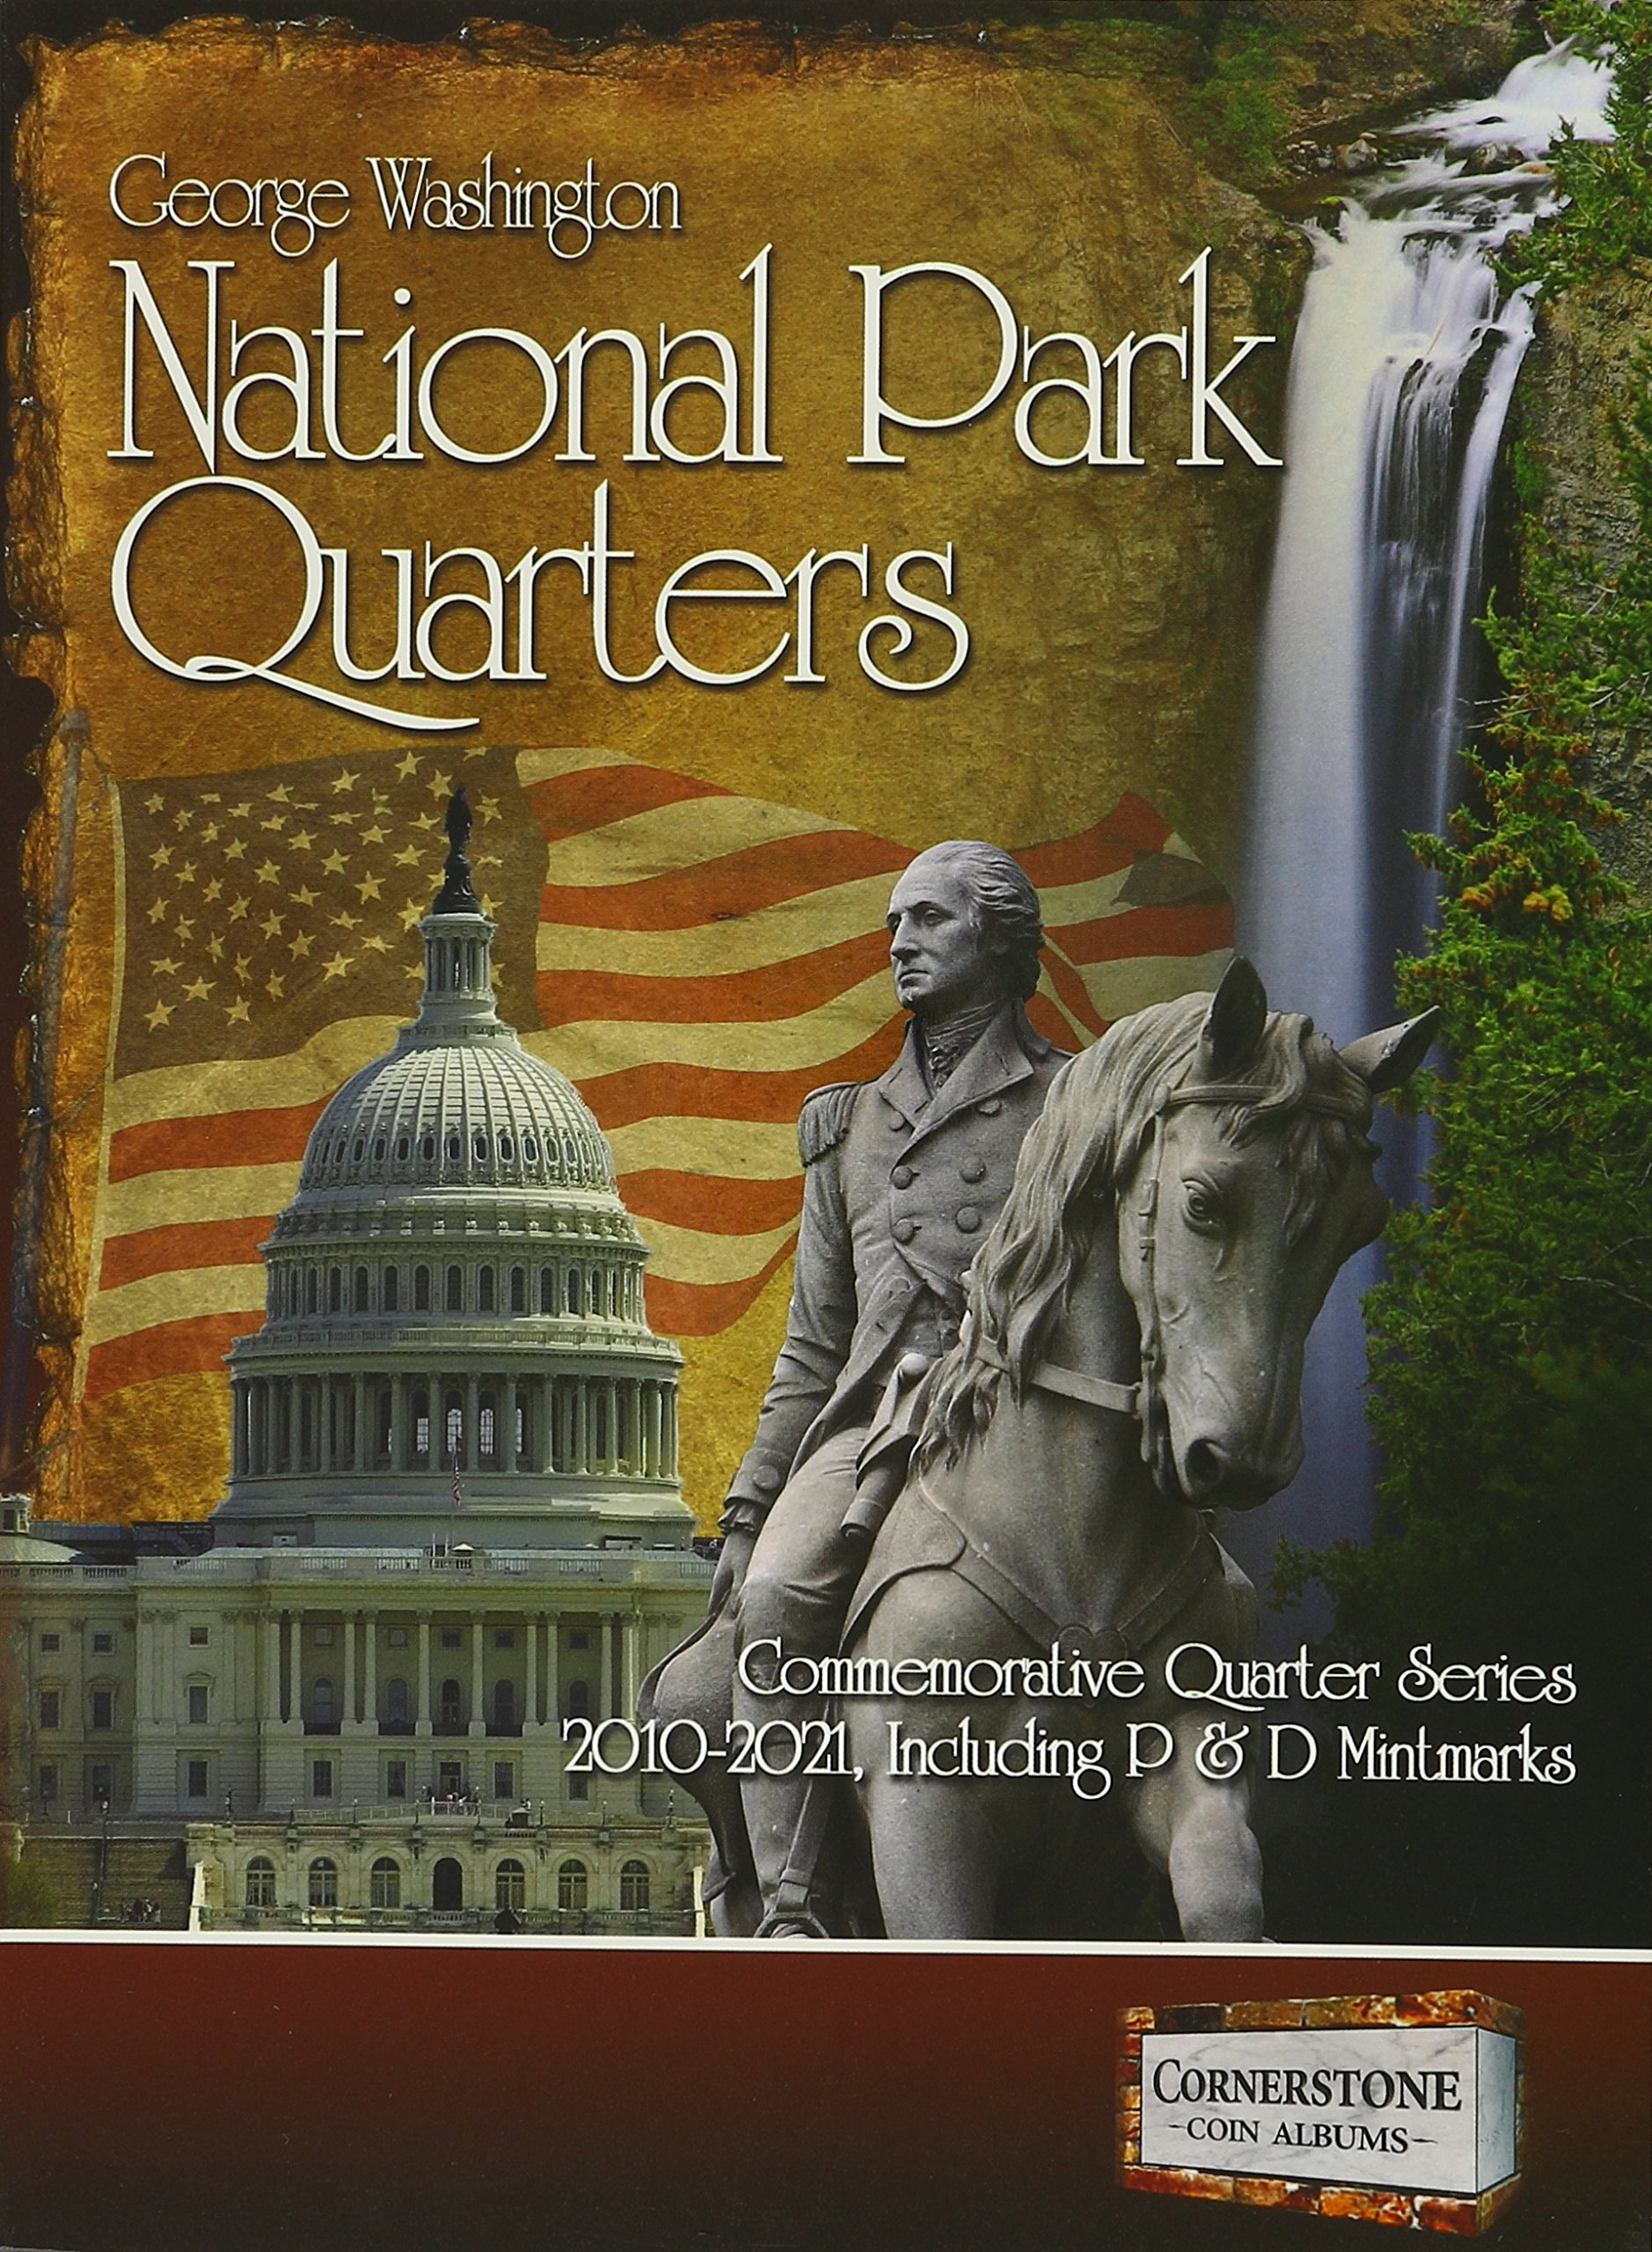 Amazoncom National Park Quarters Album  PD - Us national park quarters book